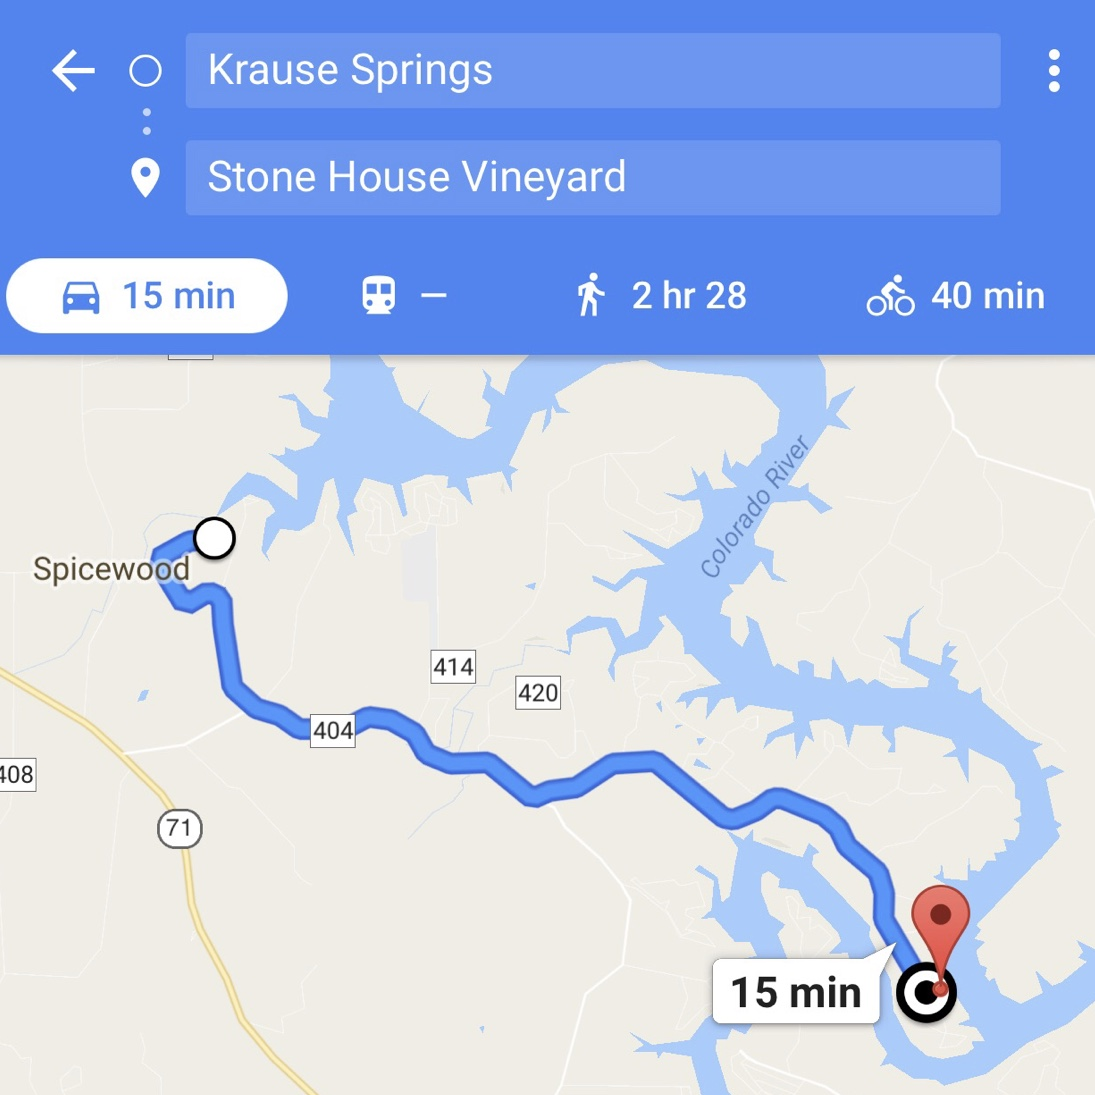 A Scenic Day Trip to Krause Springs and Stone House Vineyard